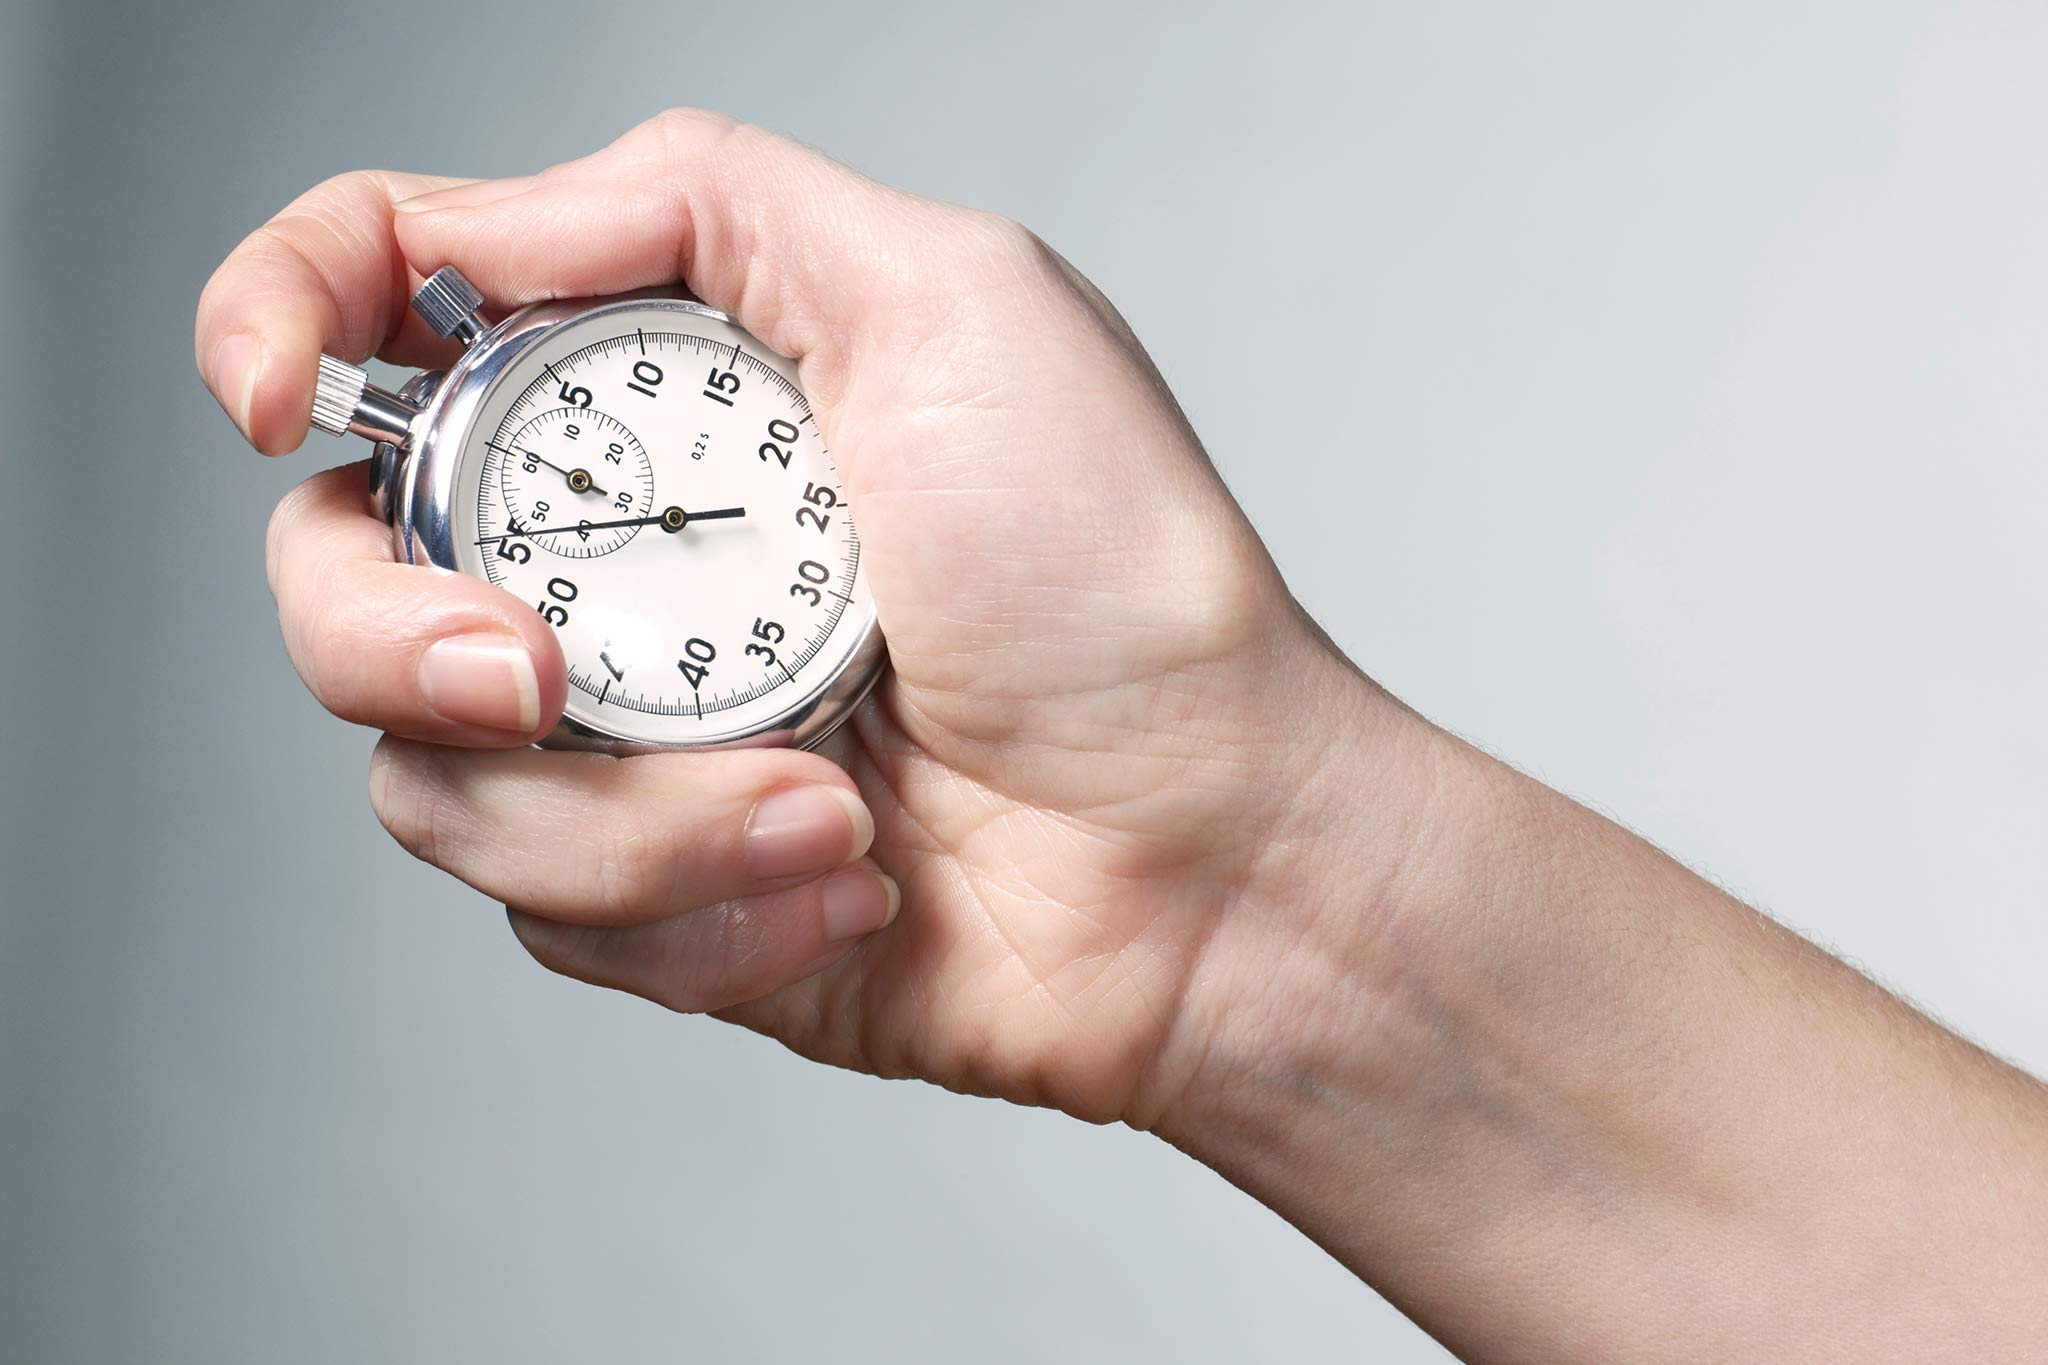 The picture shows a hand with a stopwatch.